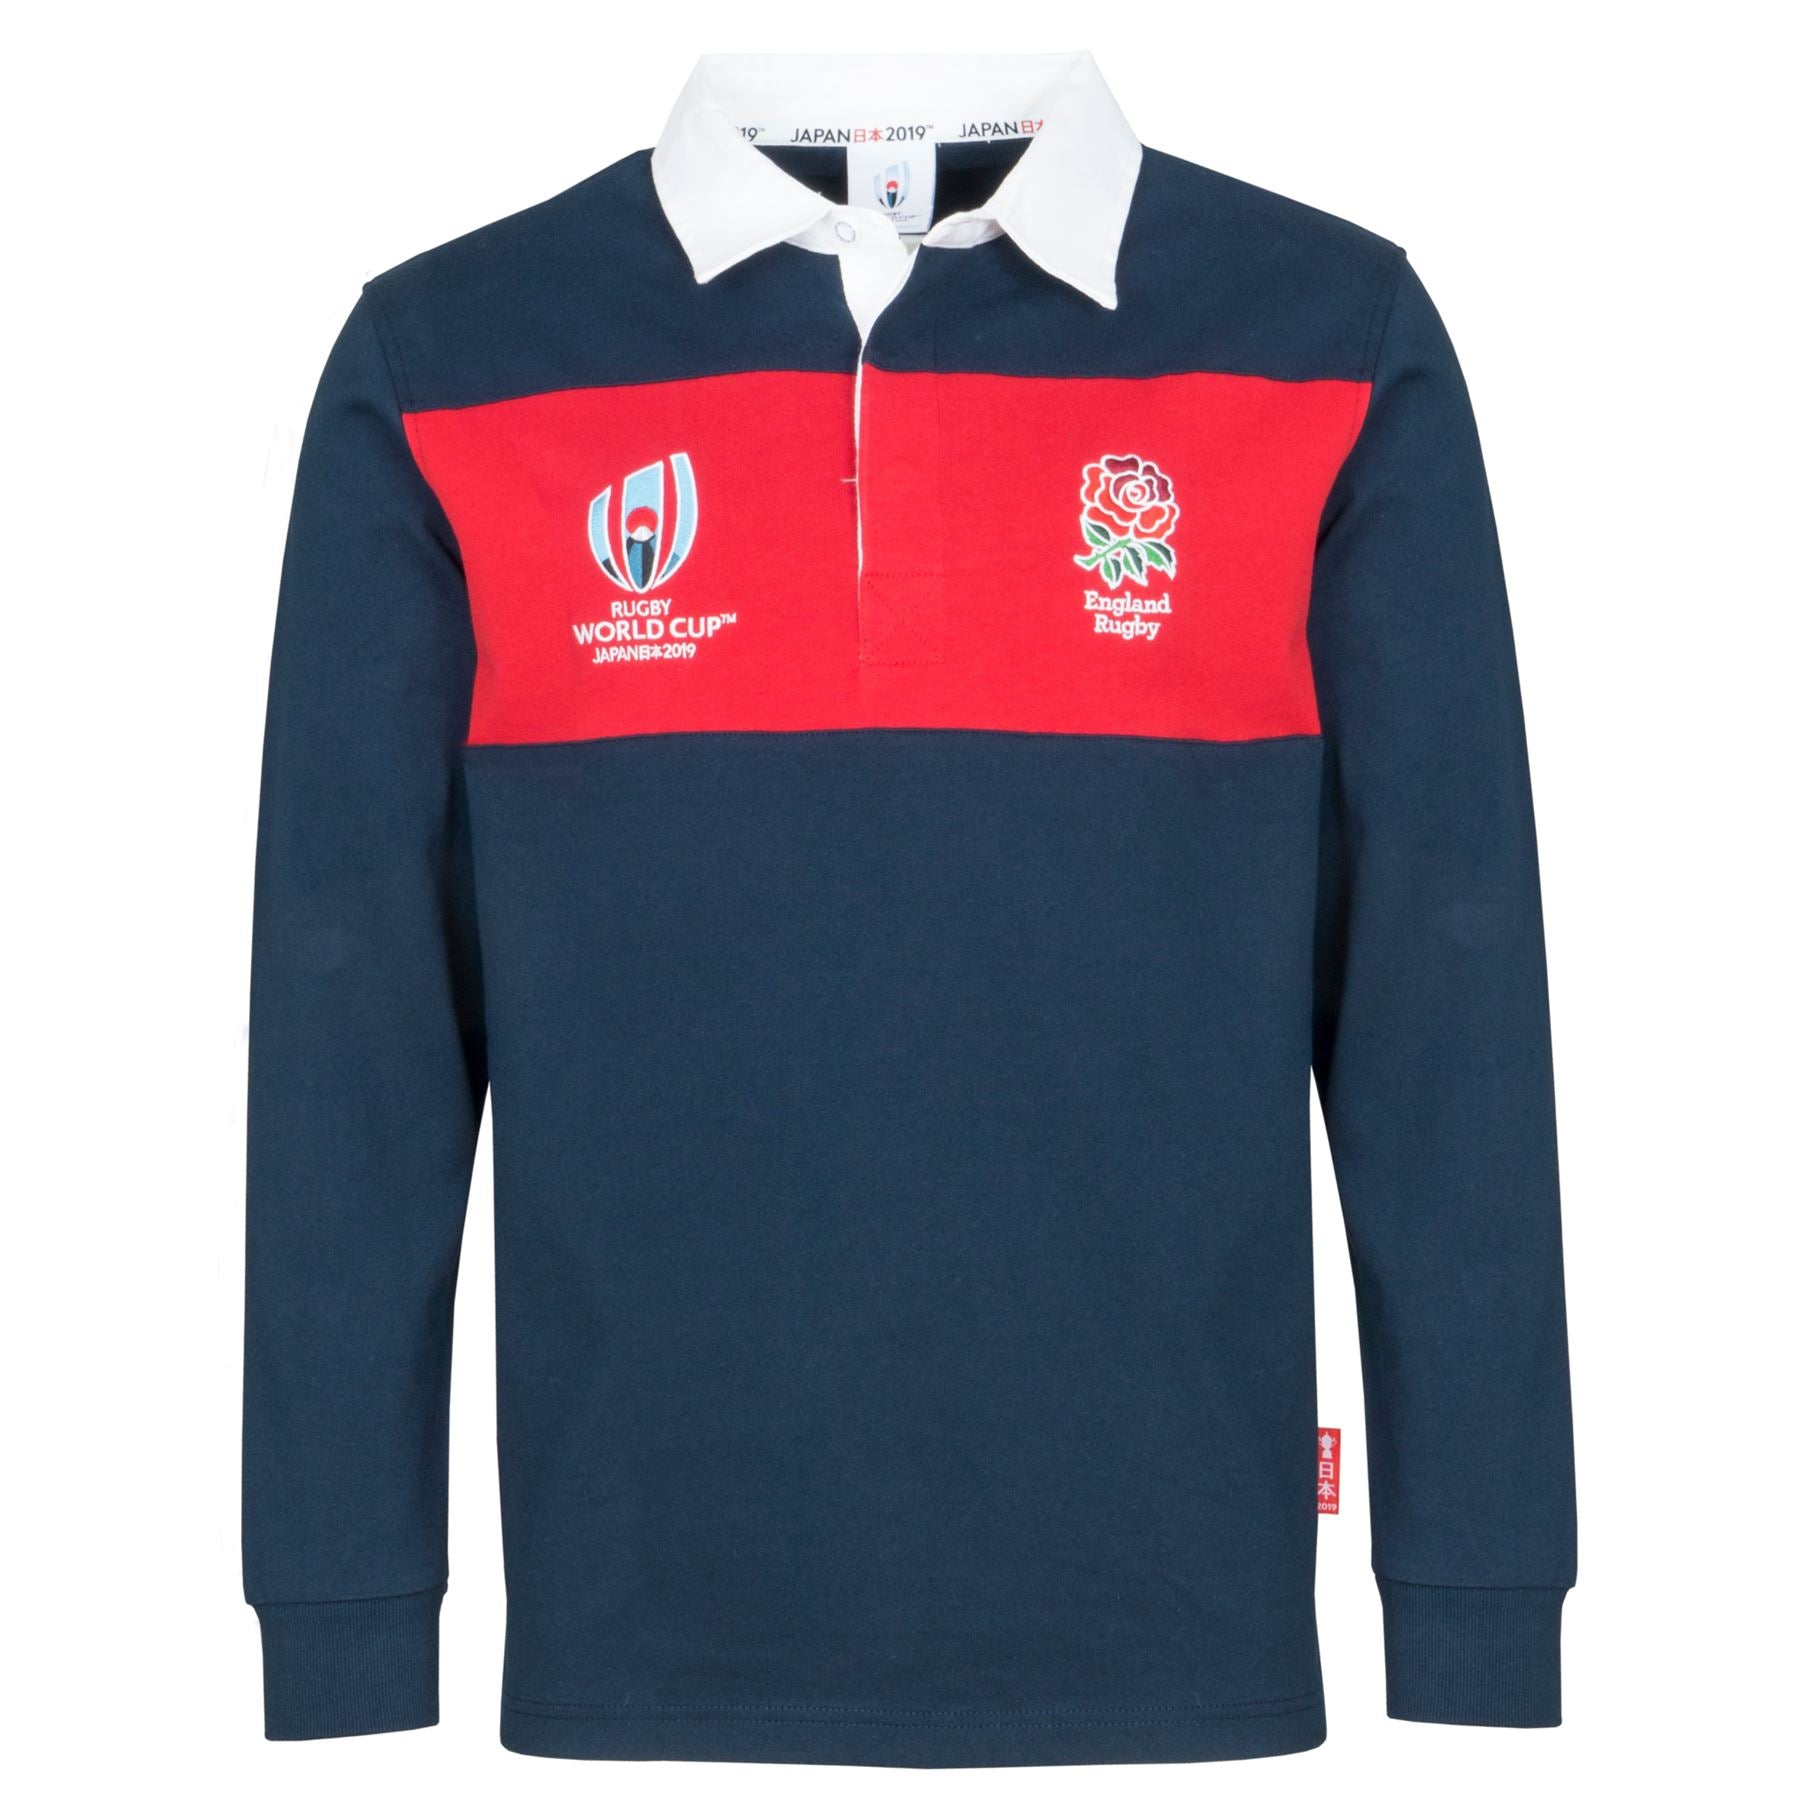 00c3e7435d5 Rugby World Cup 2019 England Men's L/S Panel Rugby Shirt | Navy/Red ...